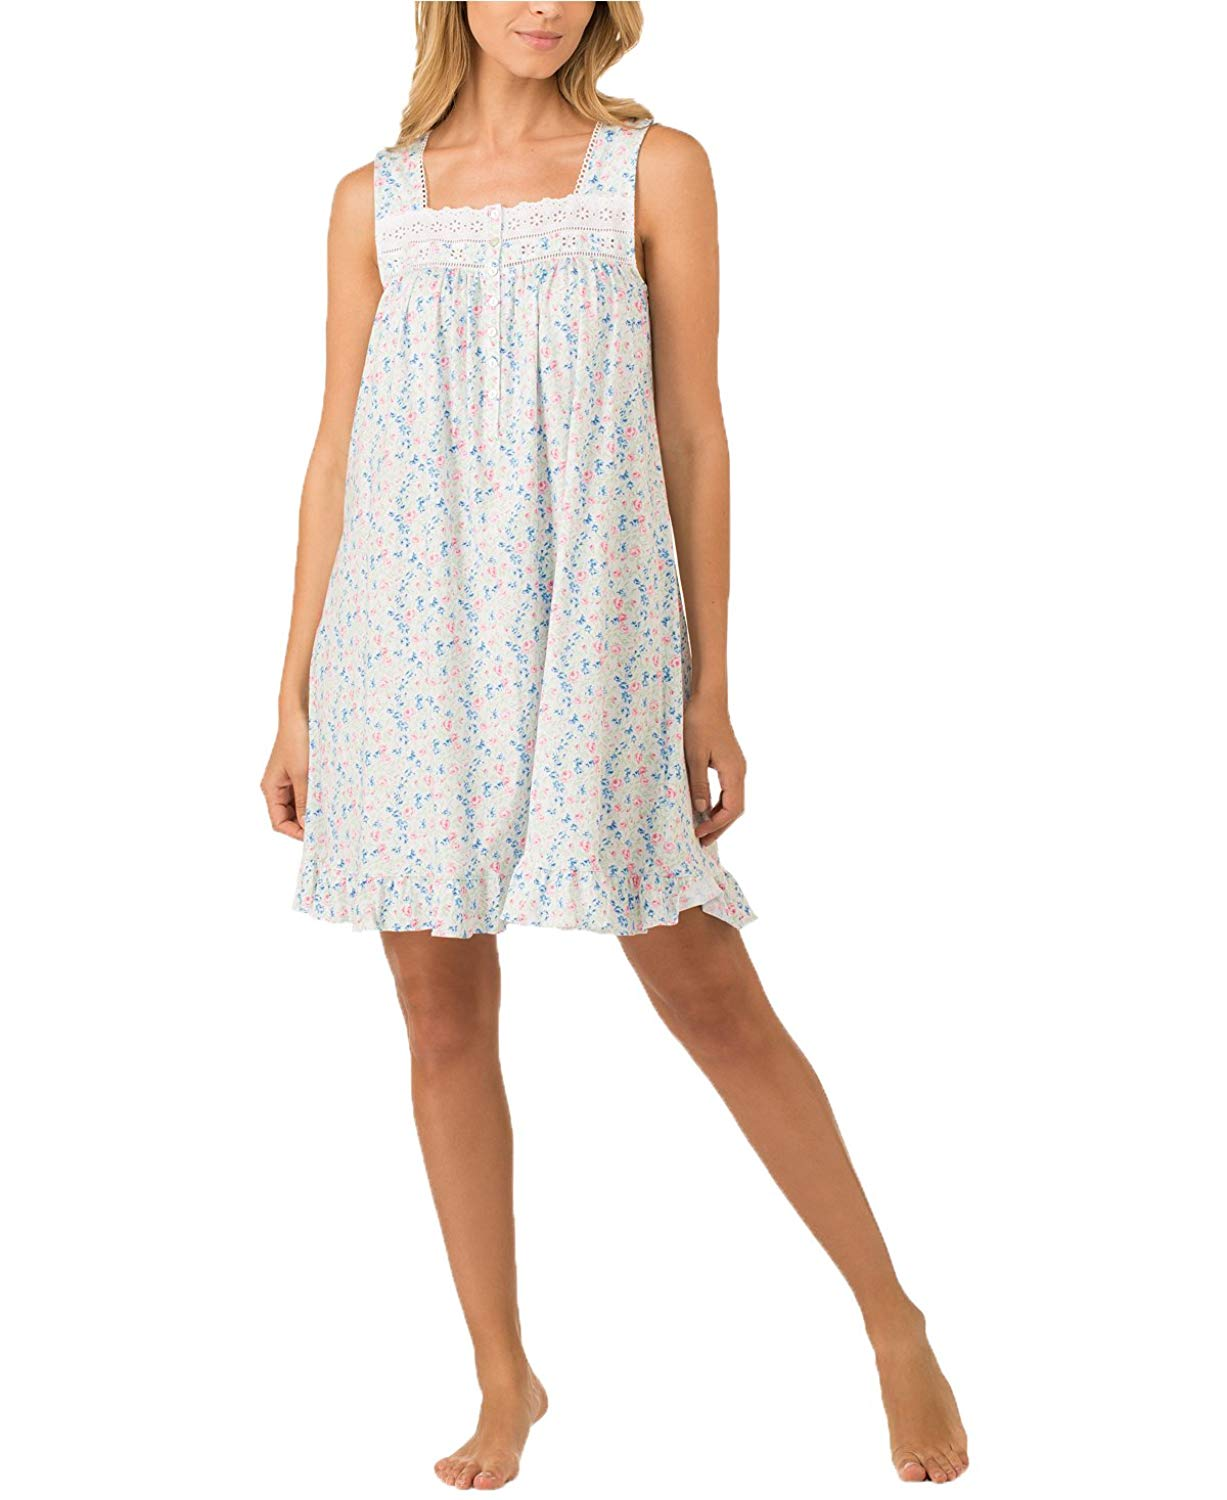 7ed8012b6e Get Quotations · Eileen West Women s Eyelet Trimmed Printed Cotton Knit  Nightgown